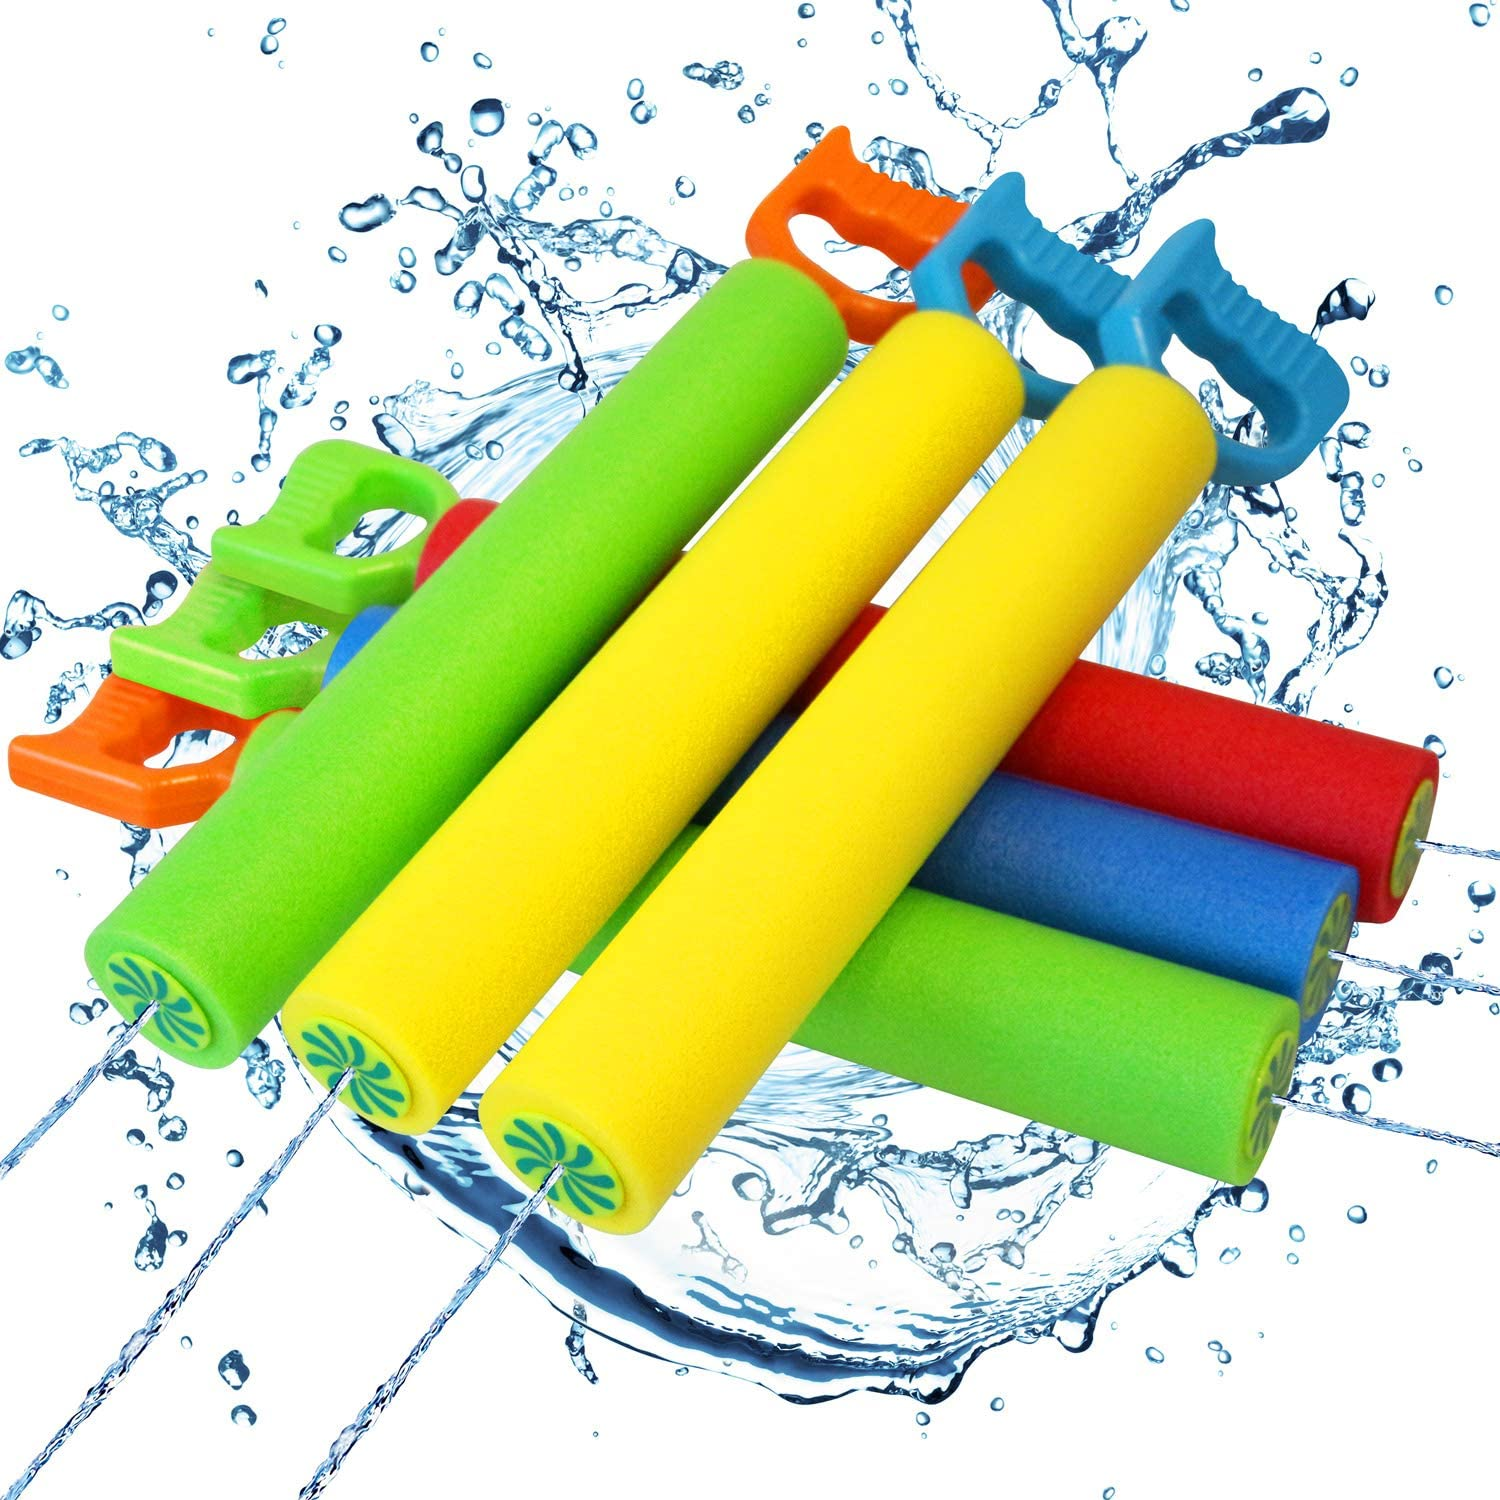 Comken 6 Pack Water Guns for Kids, Foam Water Blaster Squirt Guns,Easy to Carry,Perfect Outdoor Play Game Toys for Summer in Garden,Swimming Pool or Beach: Toys & Games